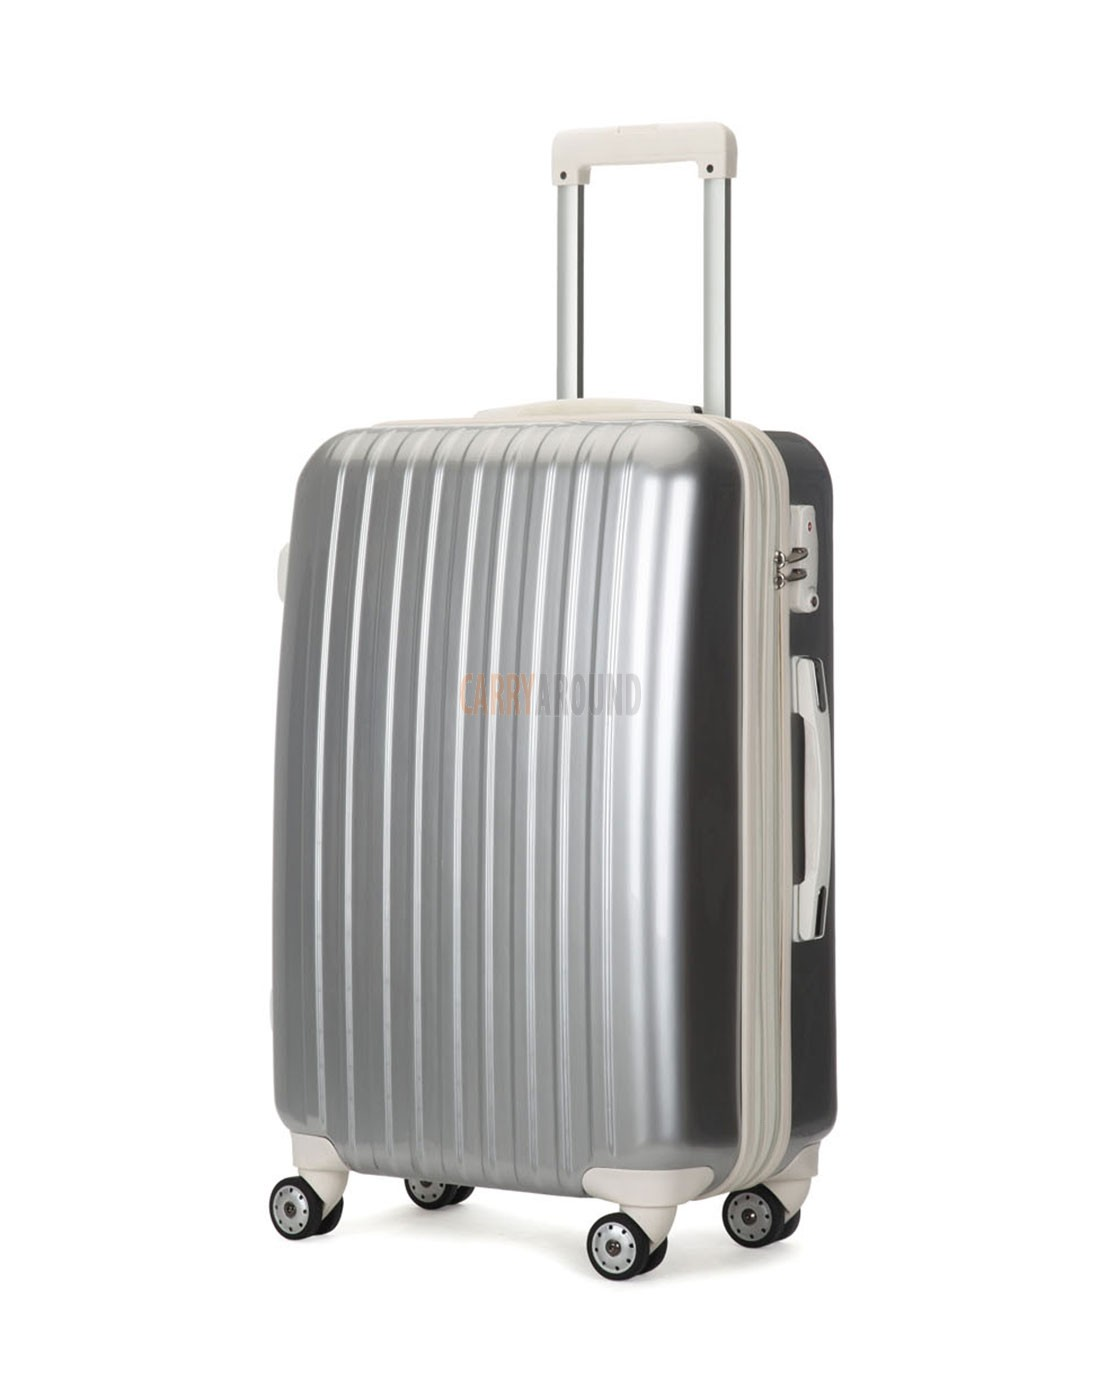 """AIRCROSS 2PC Set Luggage A55 Grey Hard Case Expandable Trolley Luggage - 20""""26"""""""